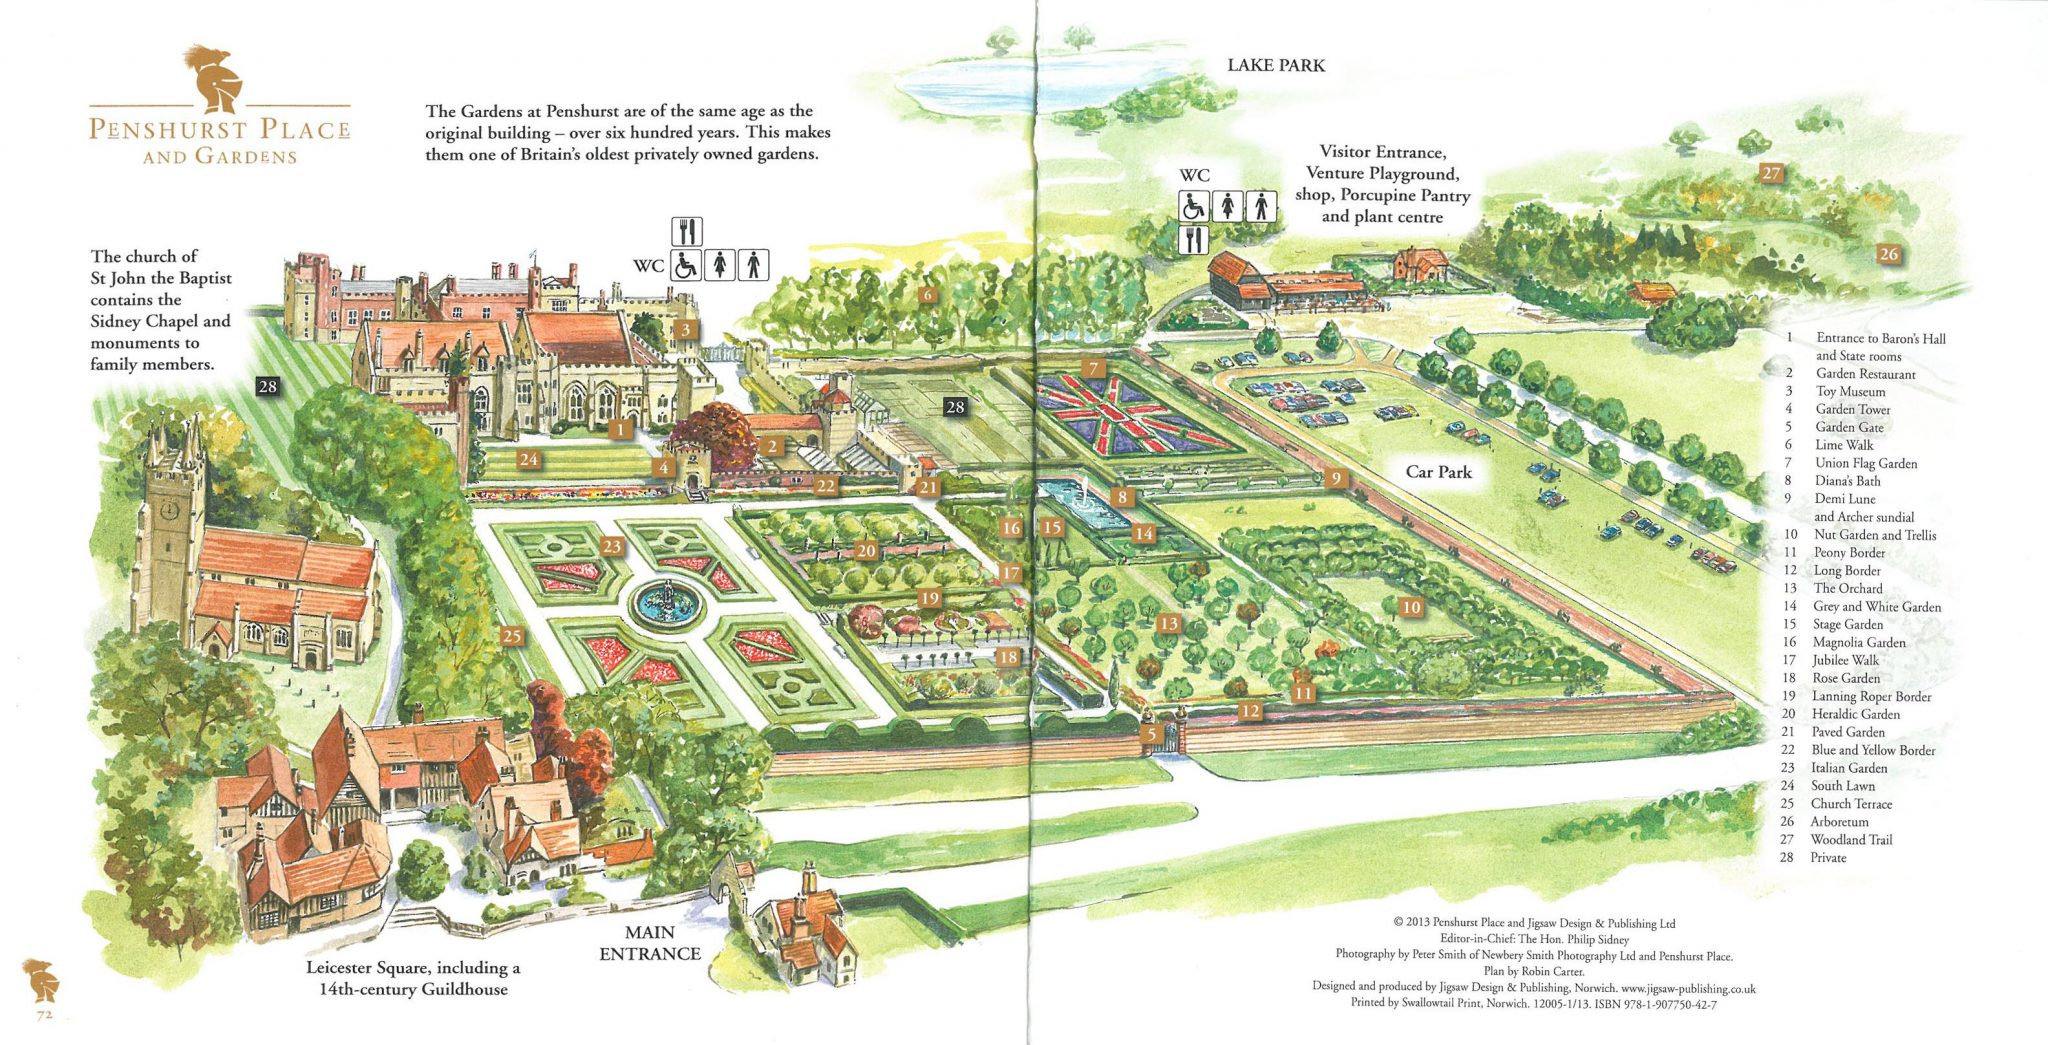 Layout of Penshurst Place & Gardens.